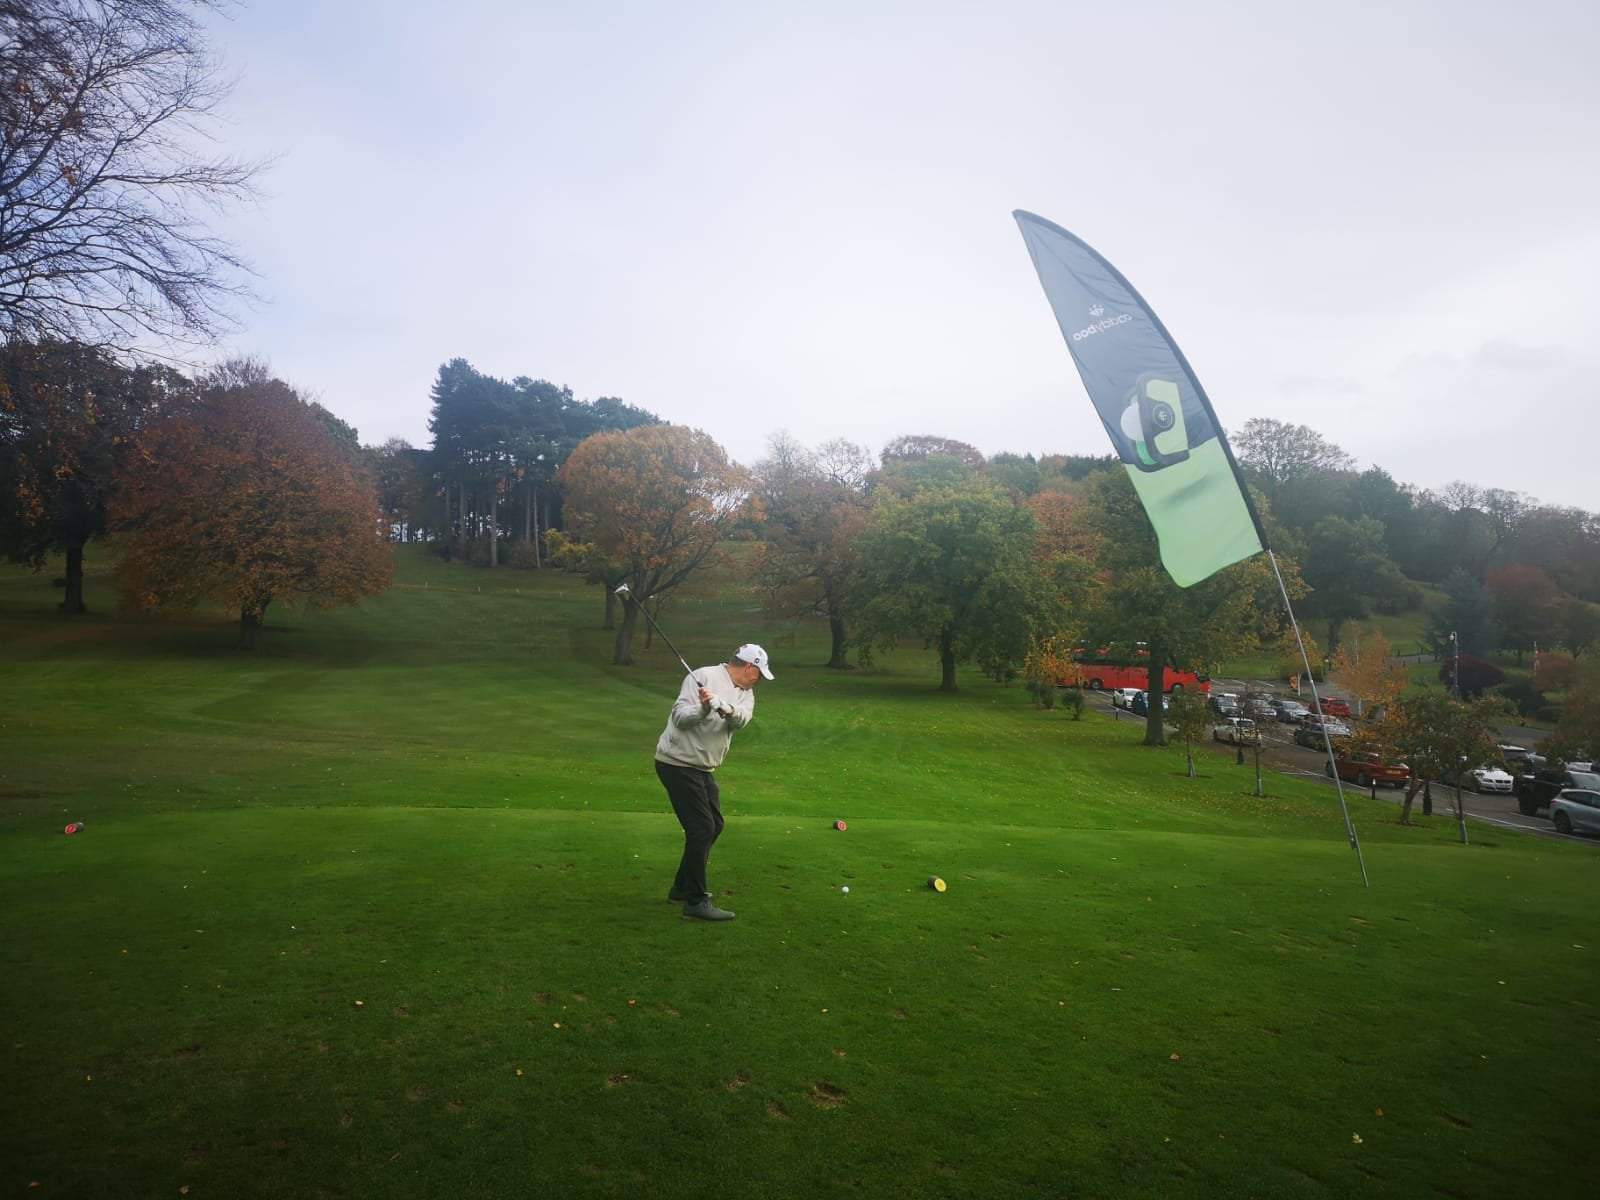 golfer on the green